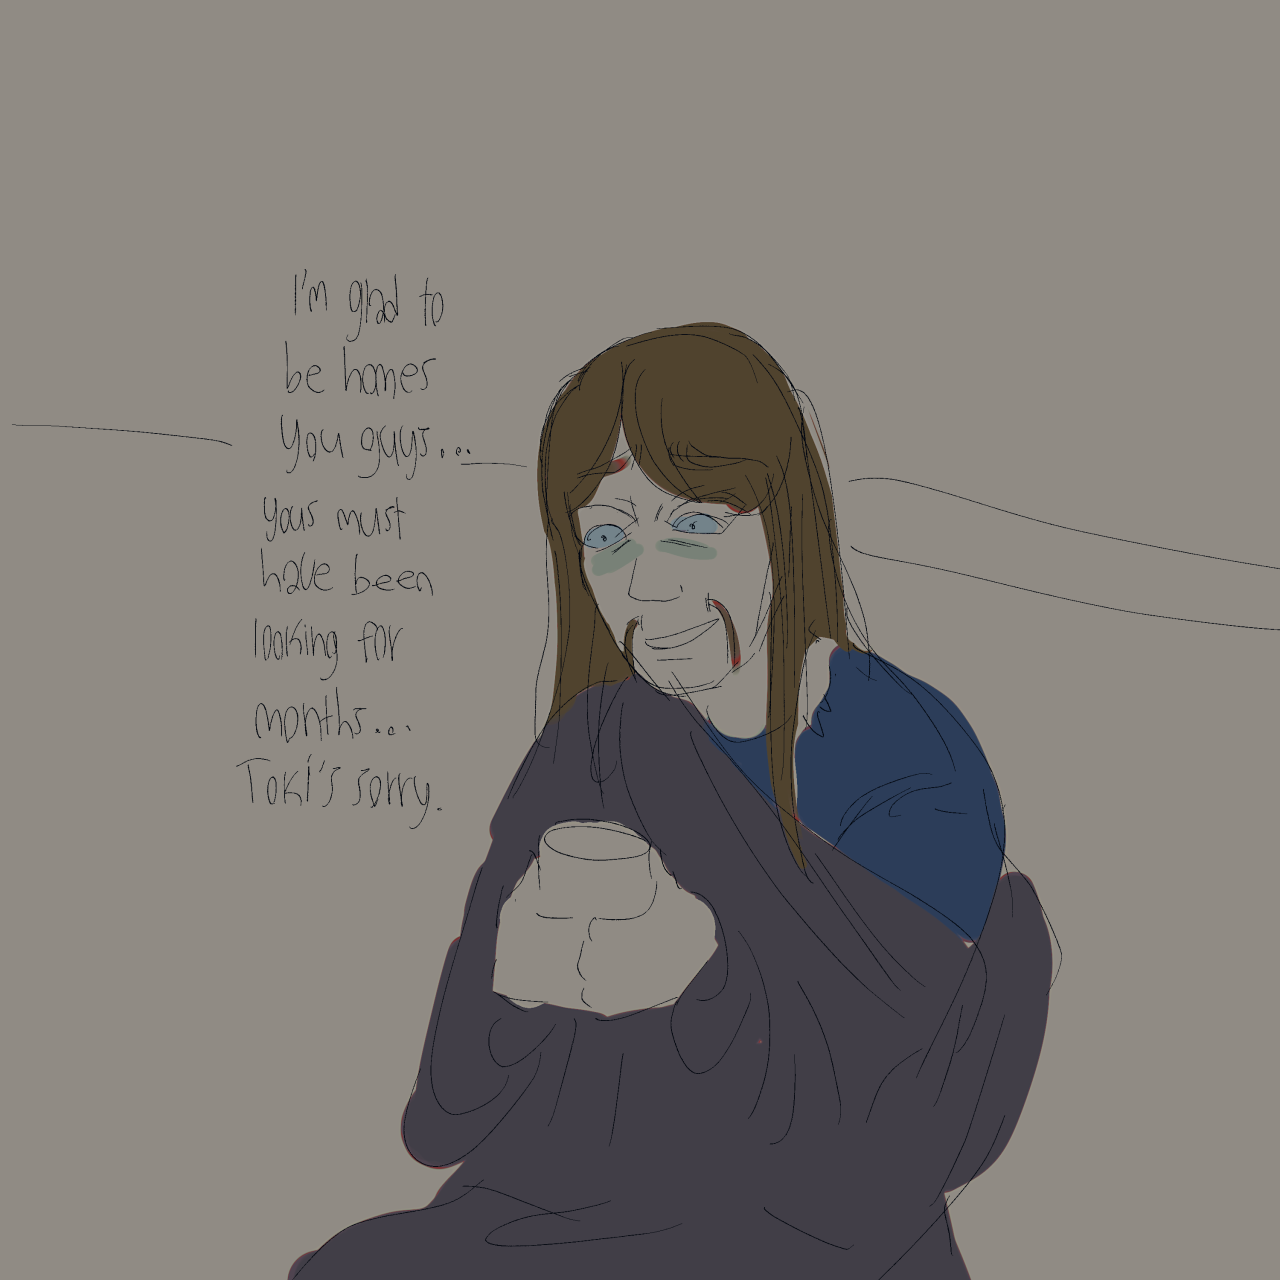 Coming home after the kidnapping #YIPPEE TO BEING SAD! WAHOO!  #Sketchy as hell because this was a rejected kloktober thing lol i decided to do something else instead #toki wartooth#skwisgaar skwigelf #pickles the drummer #nathan explosion#william murderface#my art#metalocalypse#dethklok